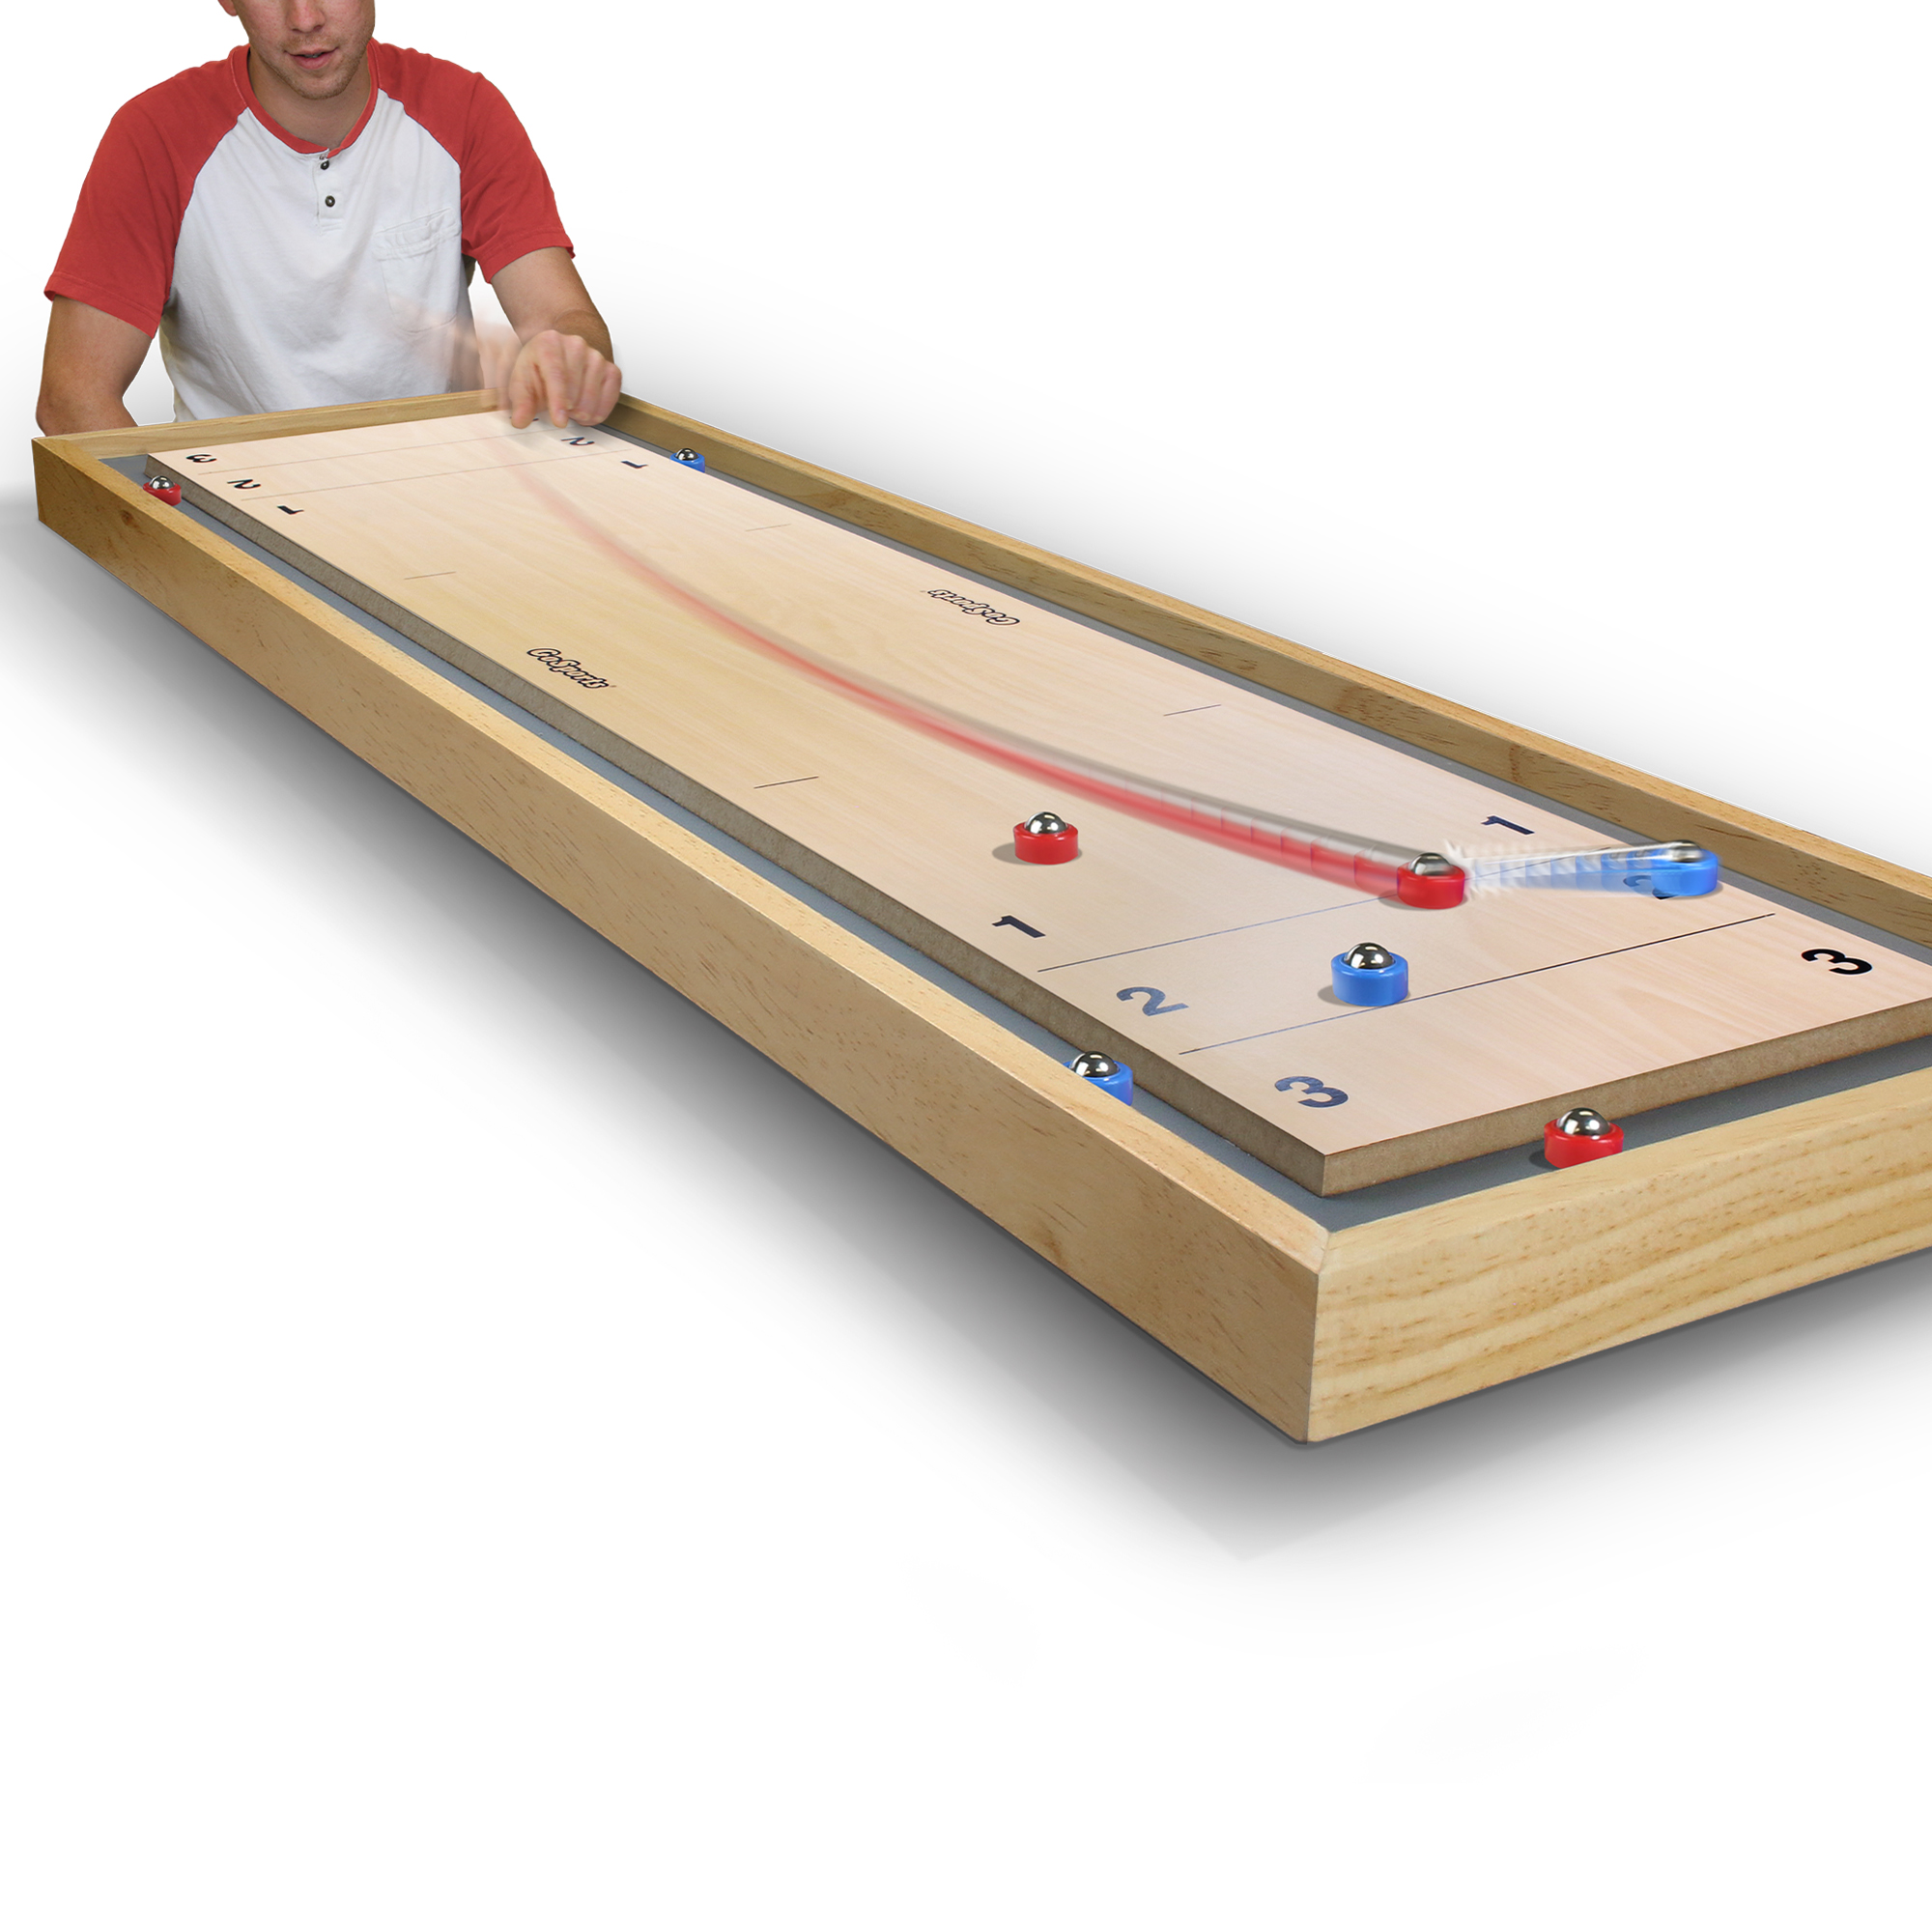 gosports shuffleboard and curling 2 in 1 board game. Black Bedroom Furniture Sets. Home Design Ideas